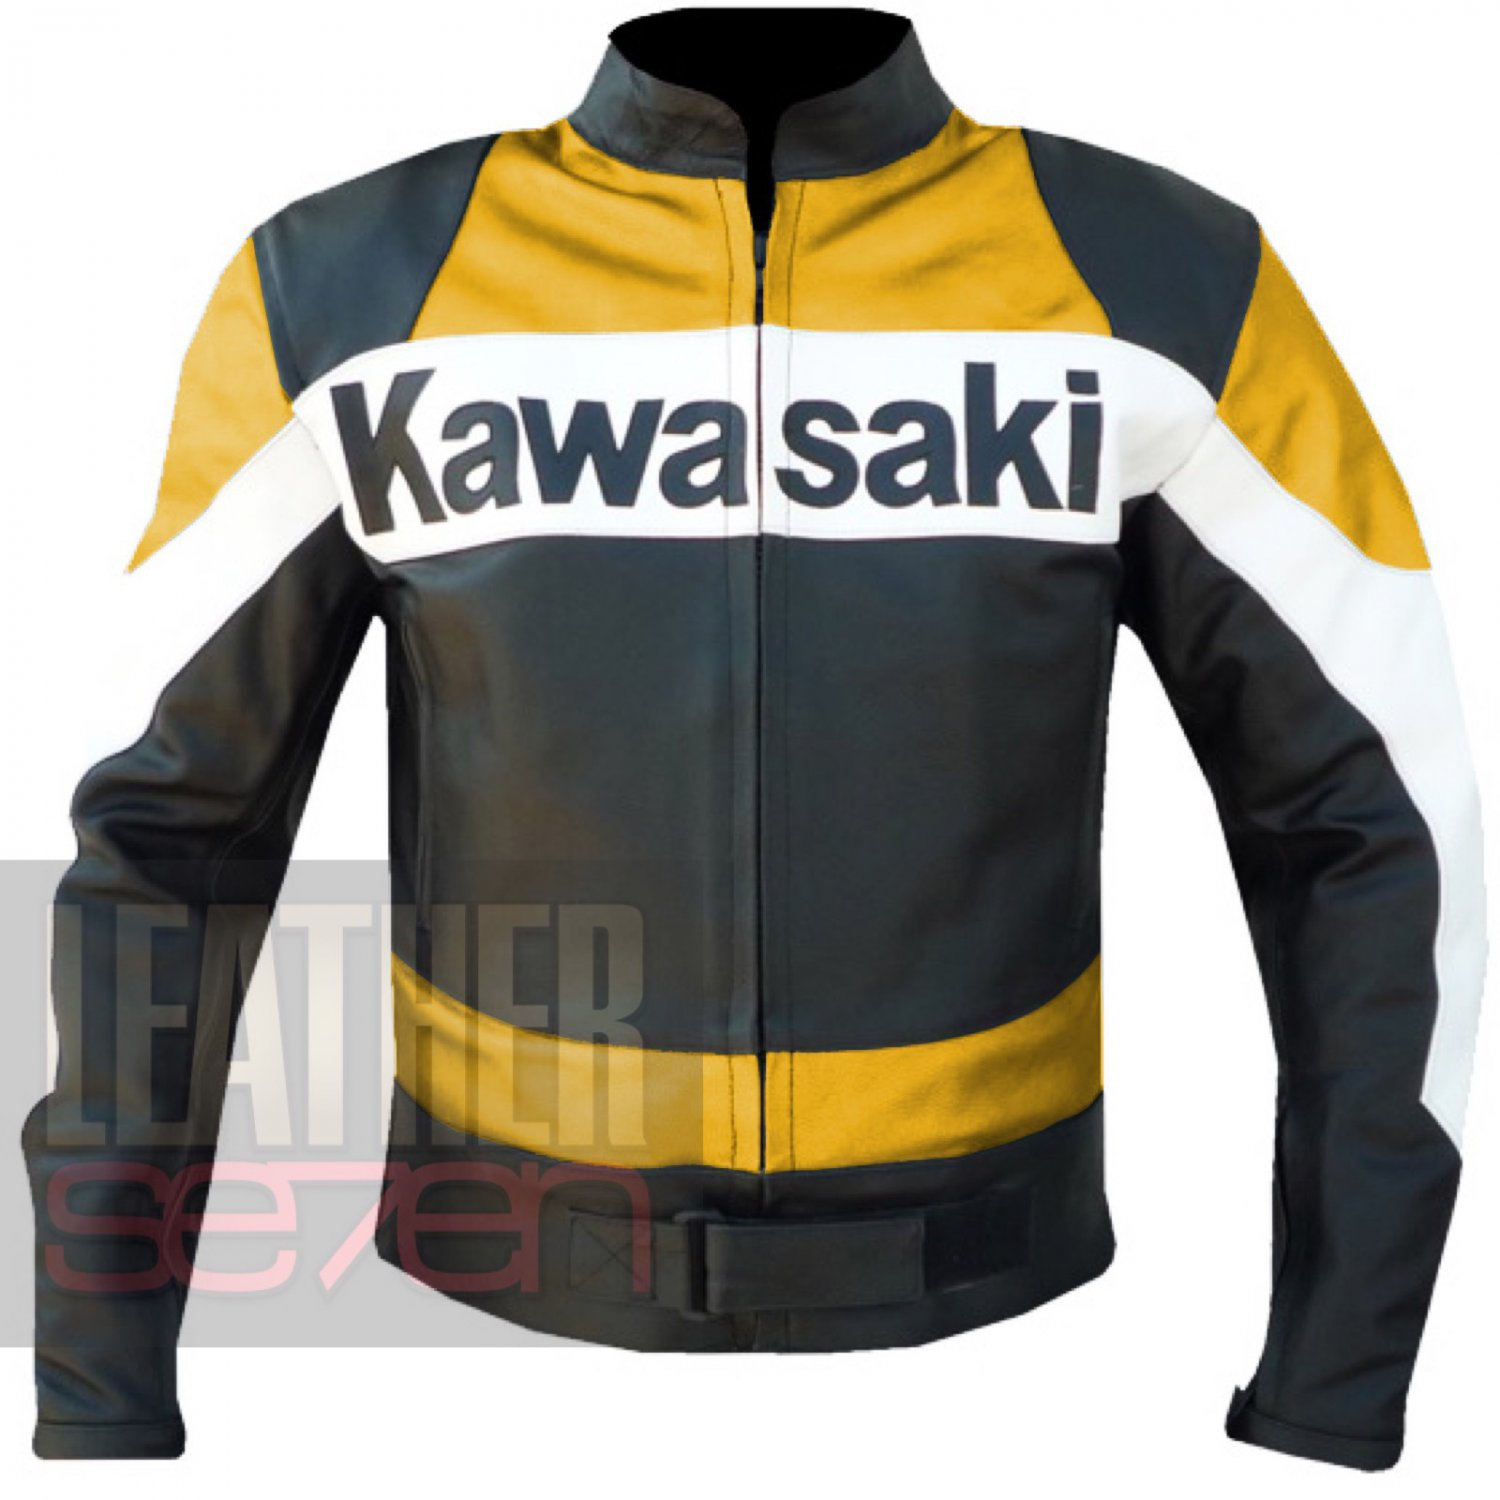 Kawasaki 2020 yellow Pure Cowhide Leather Jacket By ButtCo Group